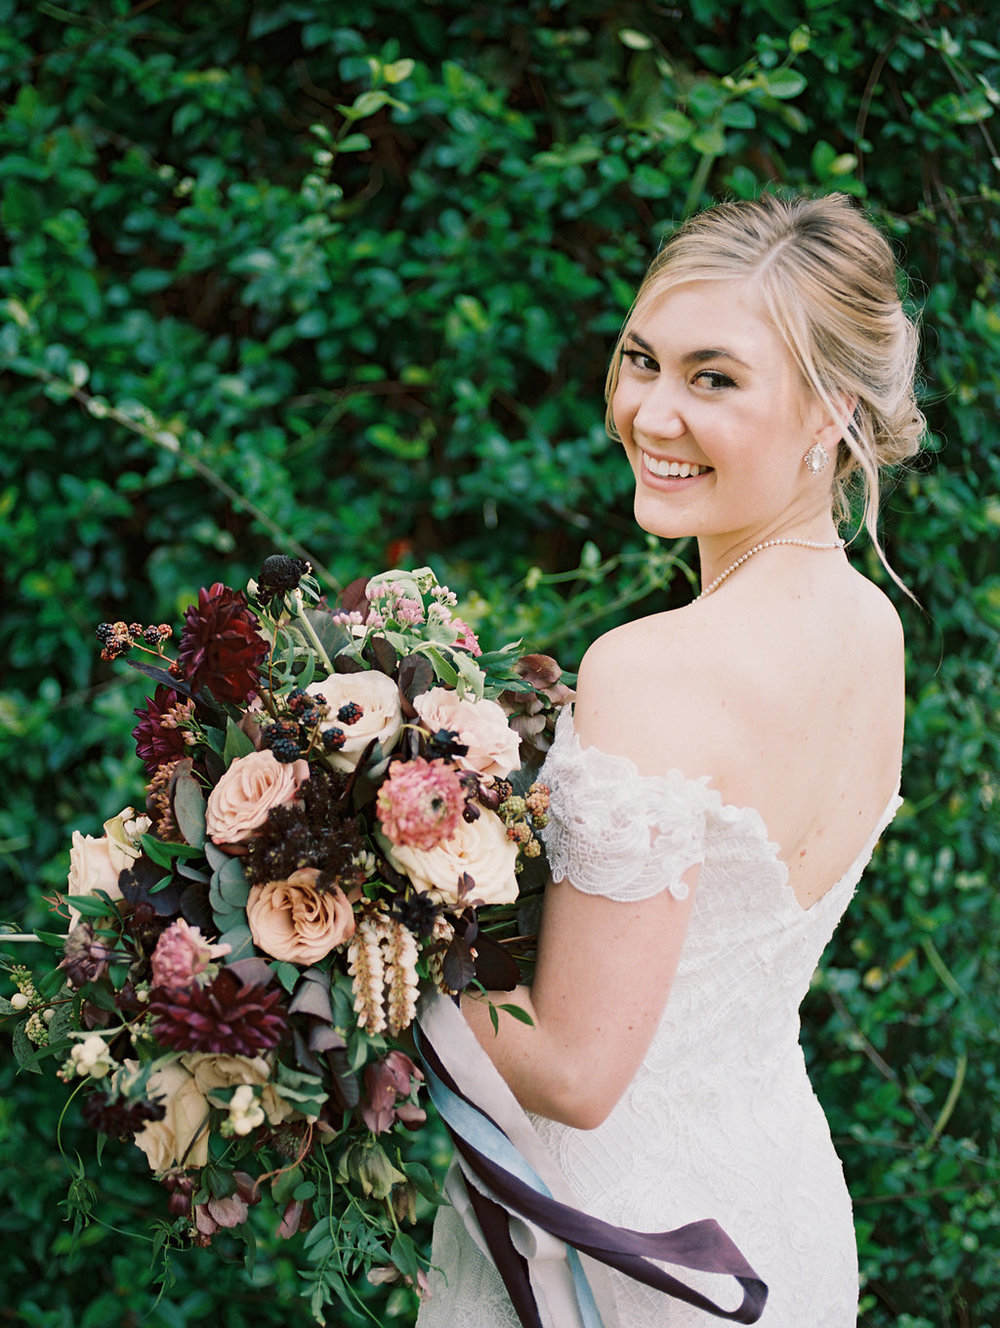 Burgundy and Cream Wedding Flowers - Lush Bridal Bouquet